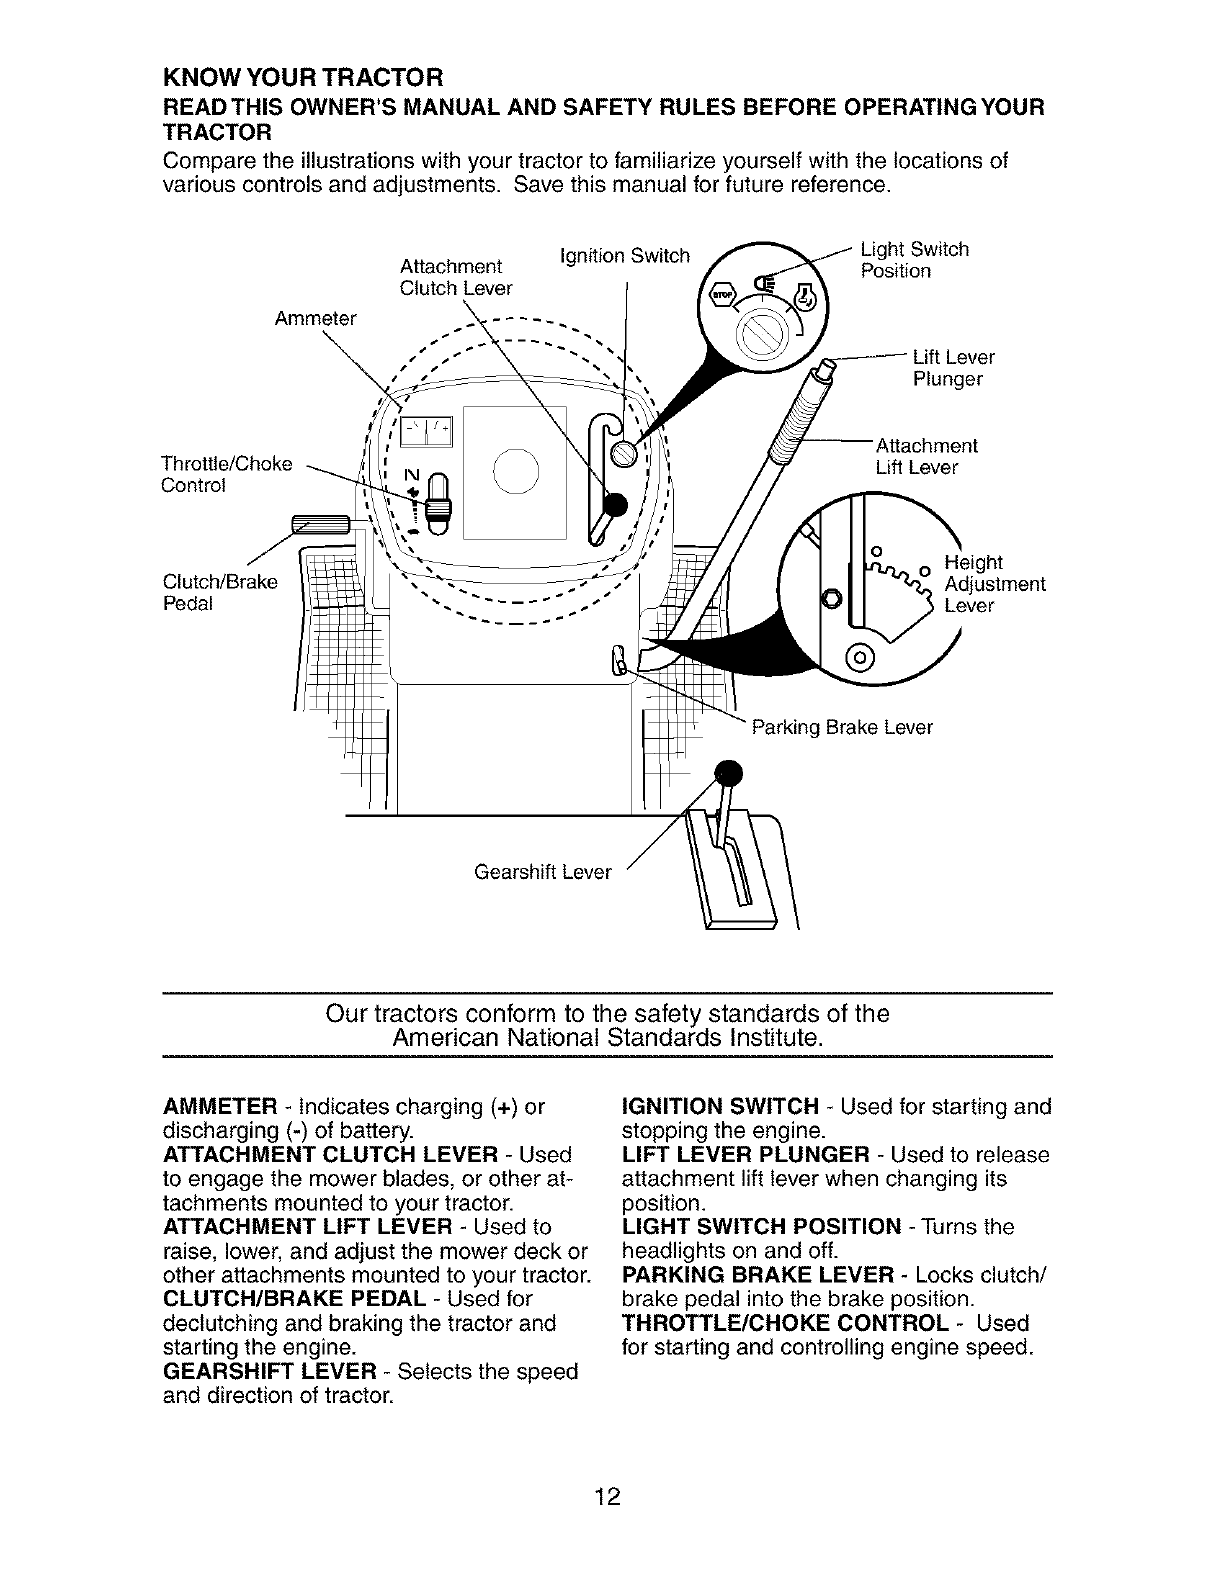 Craftsman 91727339 Our Tractors Conform To The Safety Standards Of Ammeter Wiring Diagram Lawn Tractor American National Institute